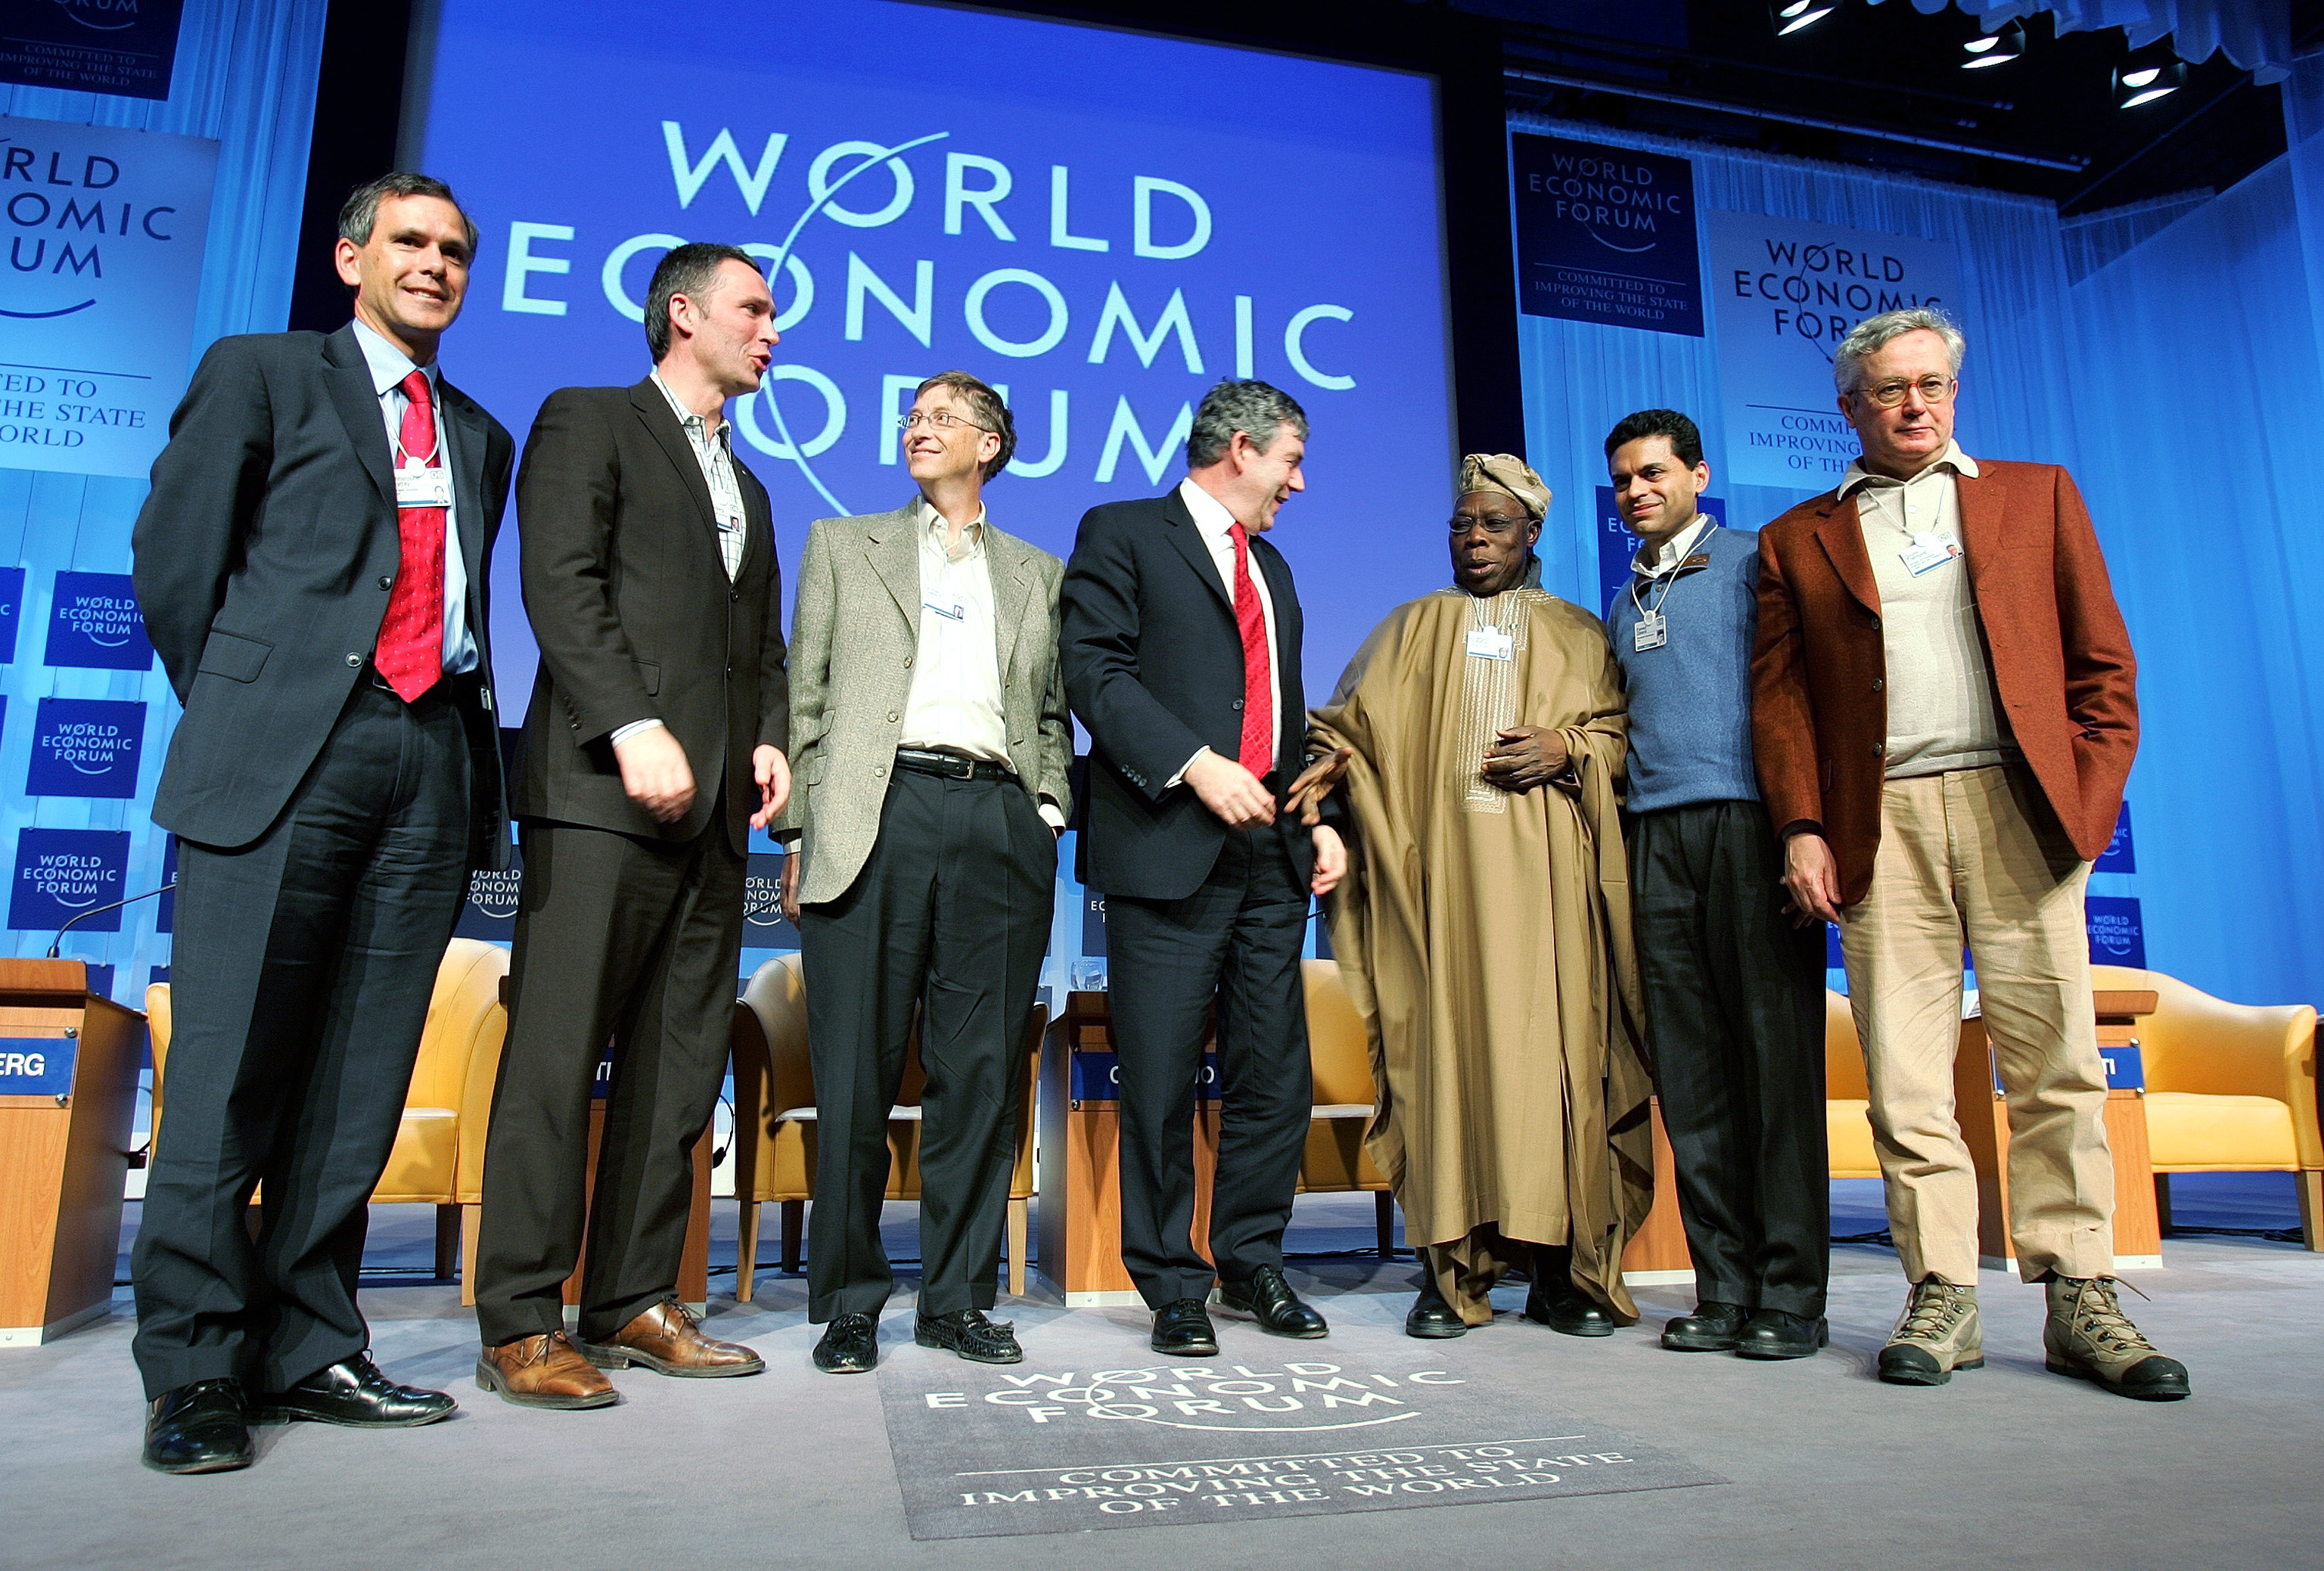 davos muslim In the corridors of davos, the fear was that muslim brotherhood would come to power with an extremist islamic agenda.